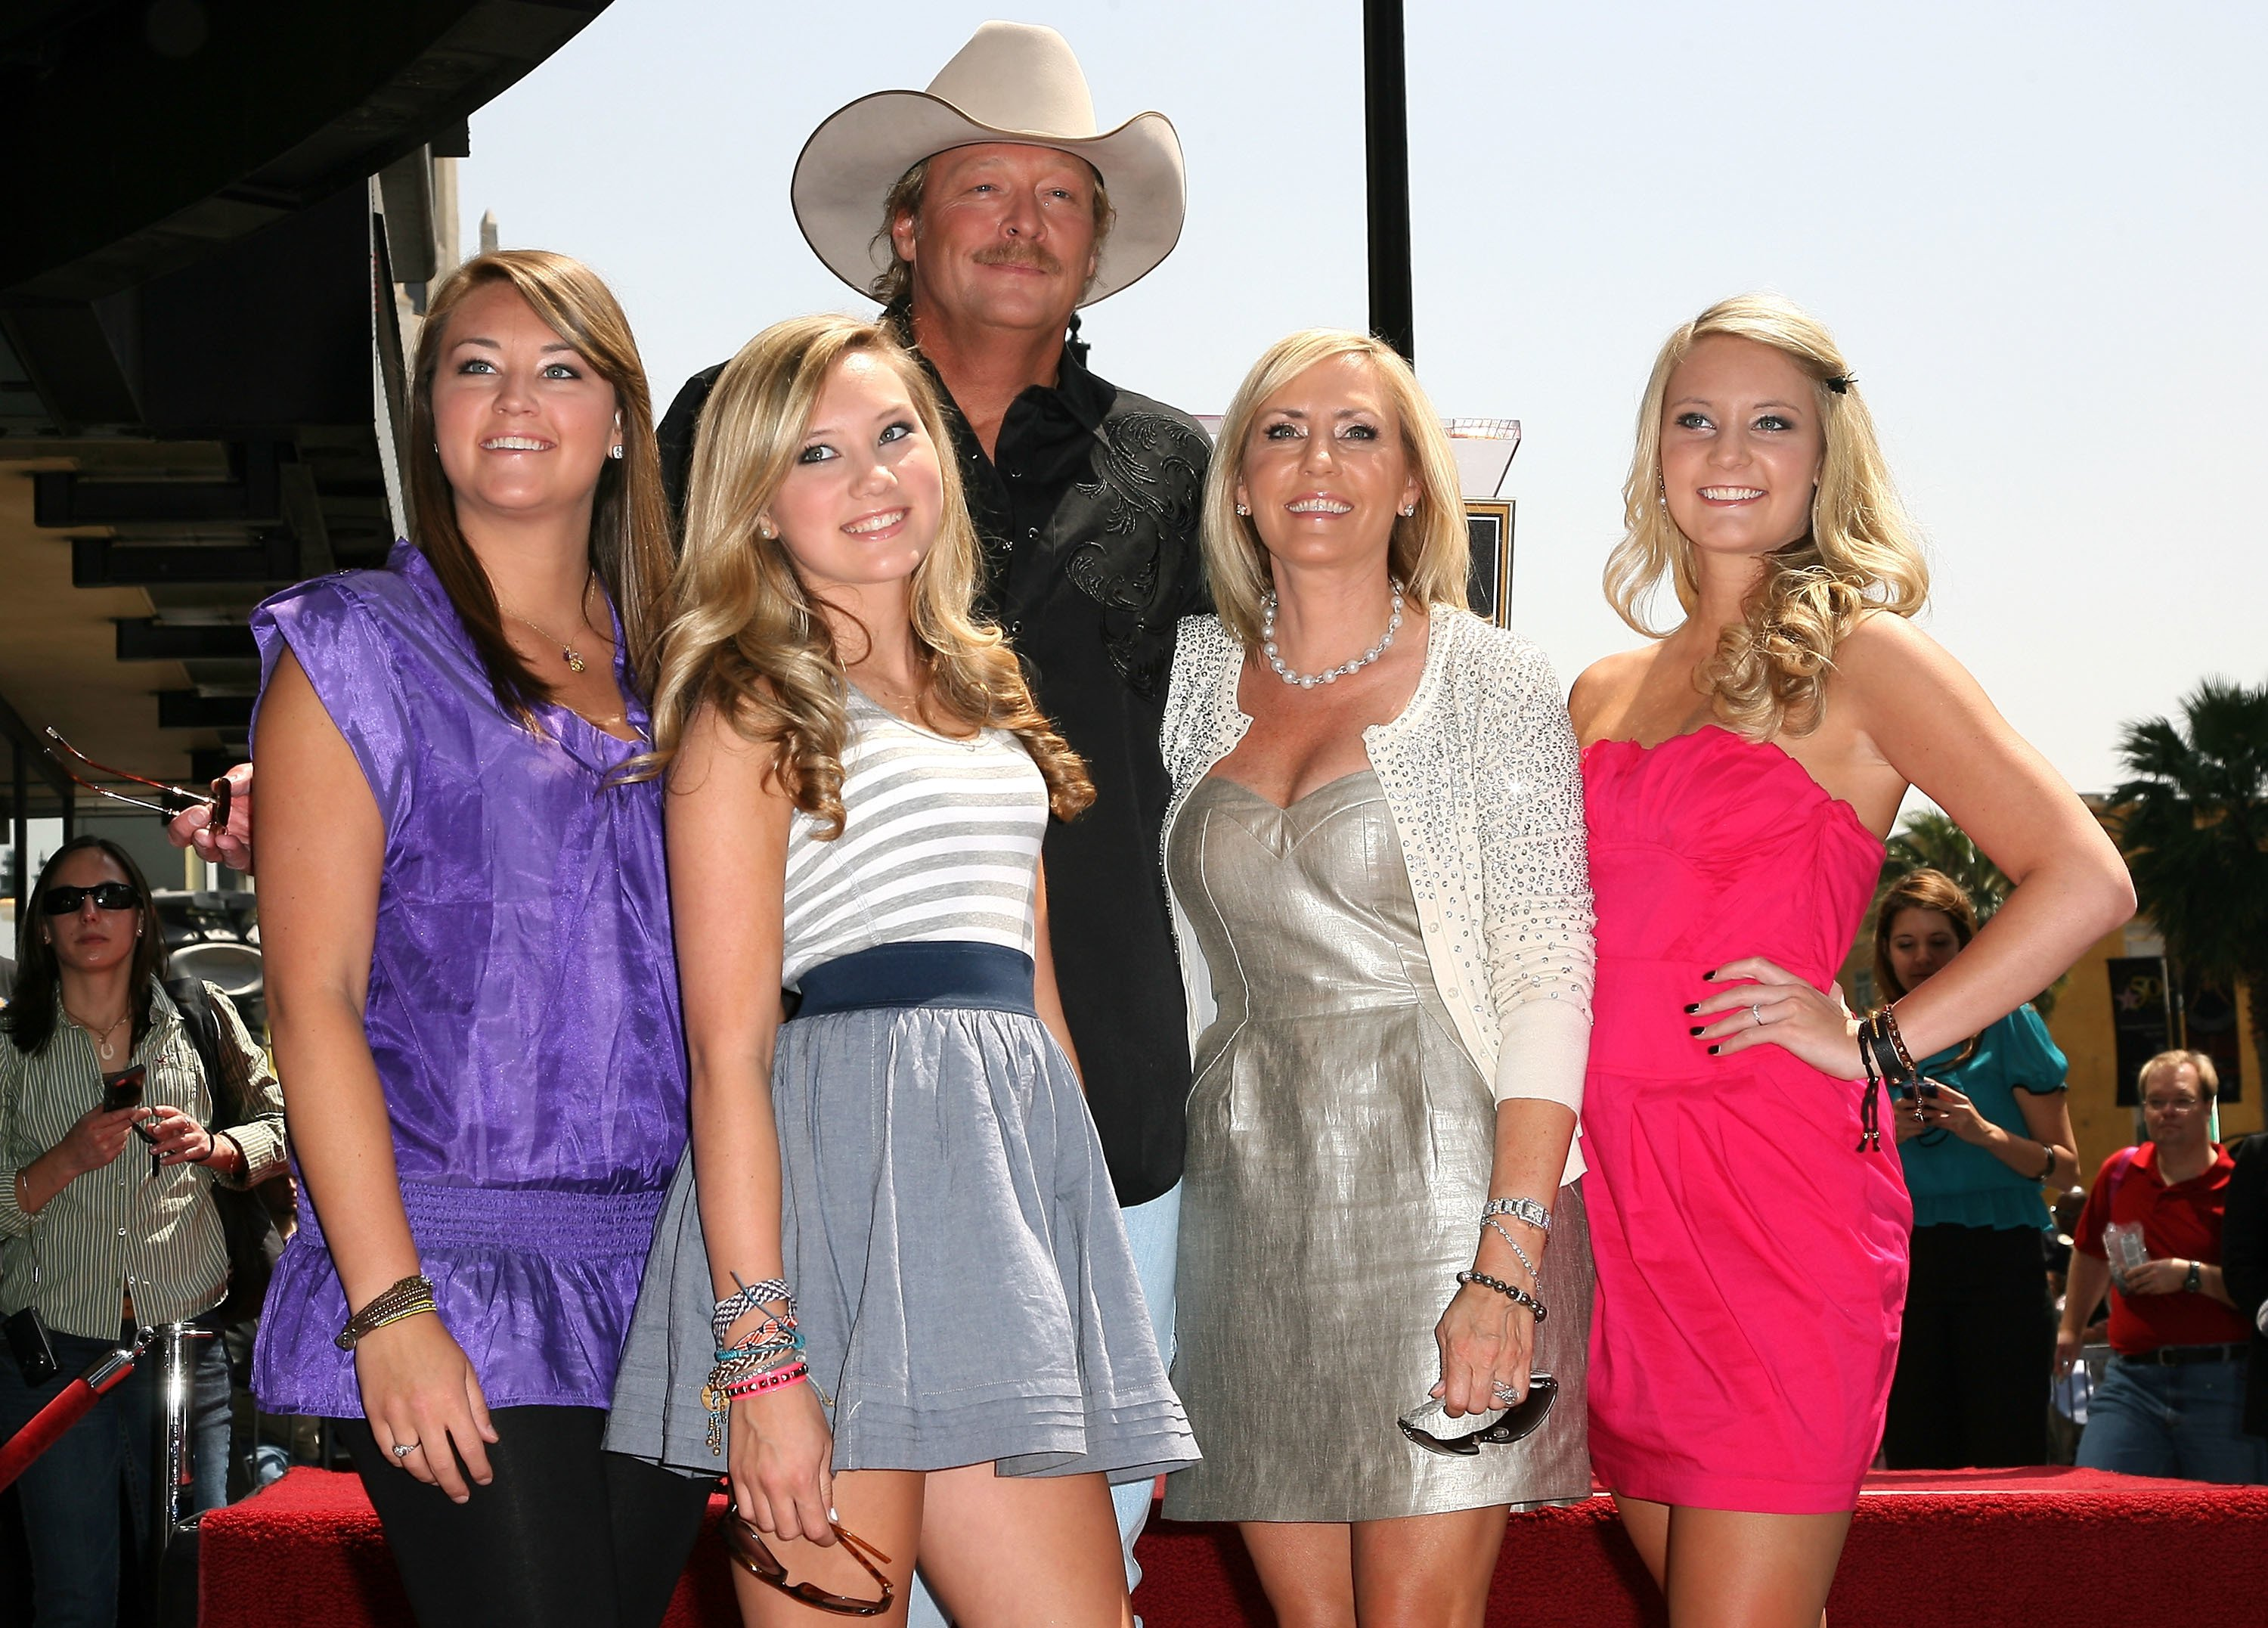 Alan Jackson attends his Hollywood Walk Of Fame Induction Ceremony with (L-R) daughter Mattie, daughter Dani, wife Denise and daughter Ali on April 16, 2010 in Hollywood, California. | Source: Getty Images